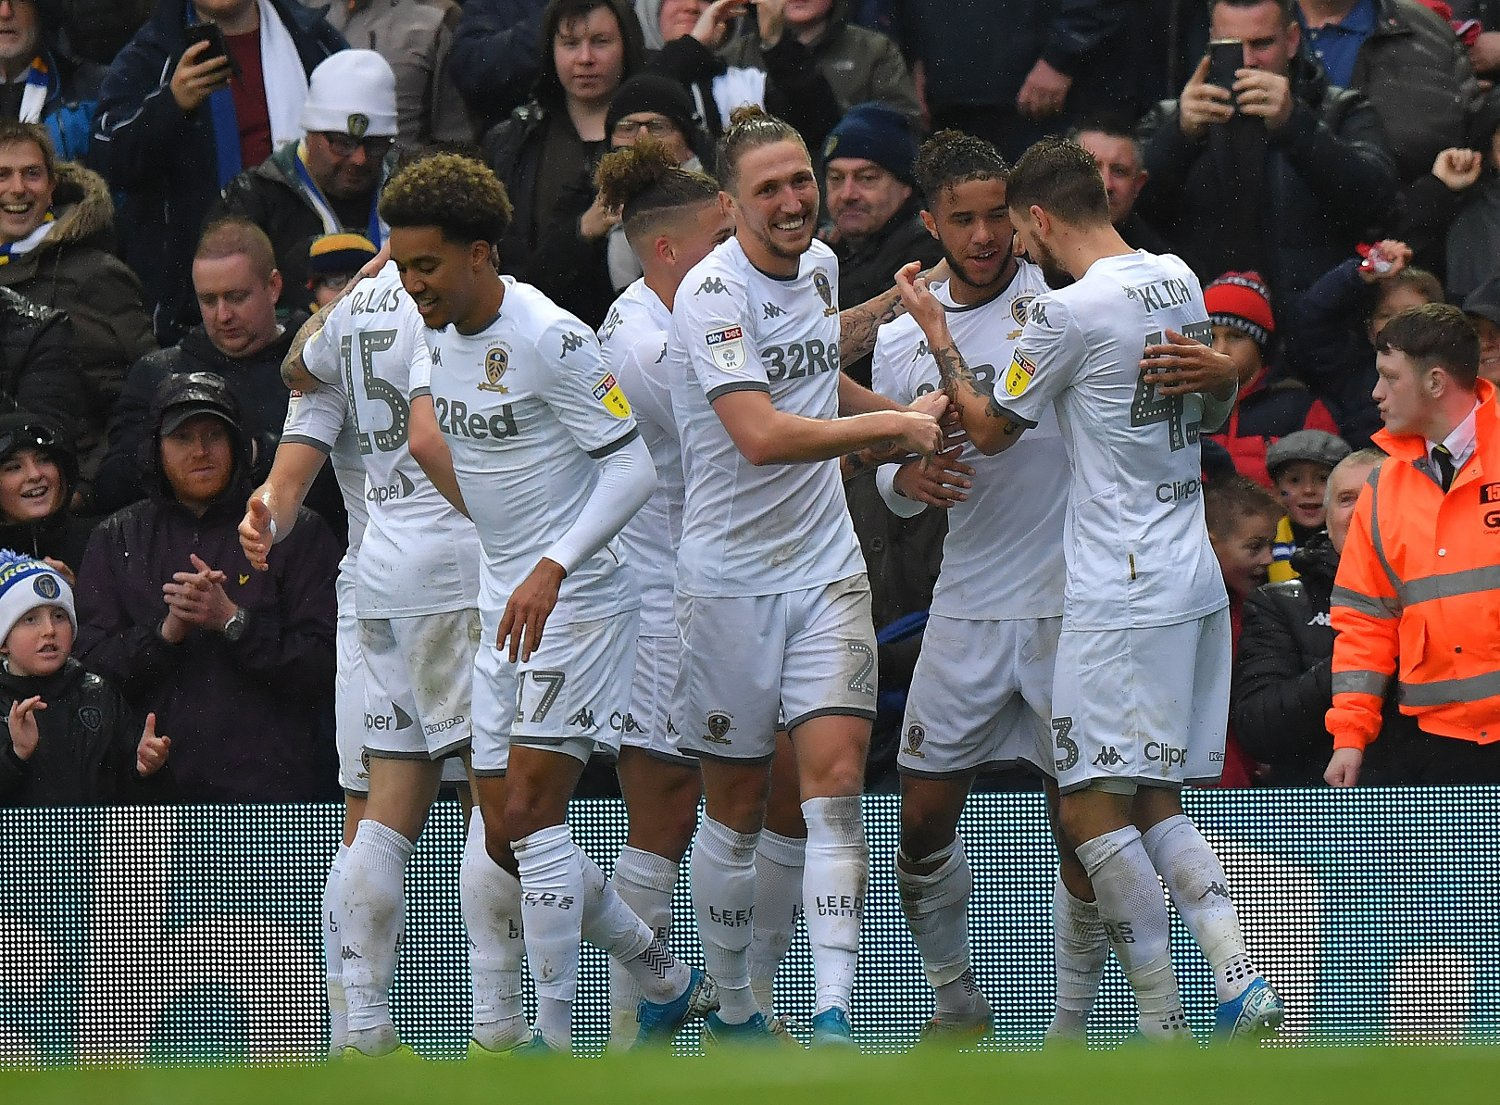 Leeds United's Tyler Roberts celebrates scoring his team's opening goal during the Sky Bet Championship match at Elland Road, Leeds.